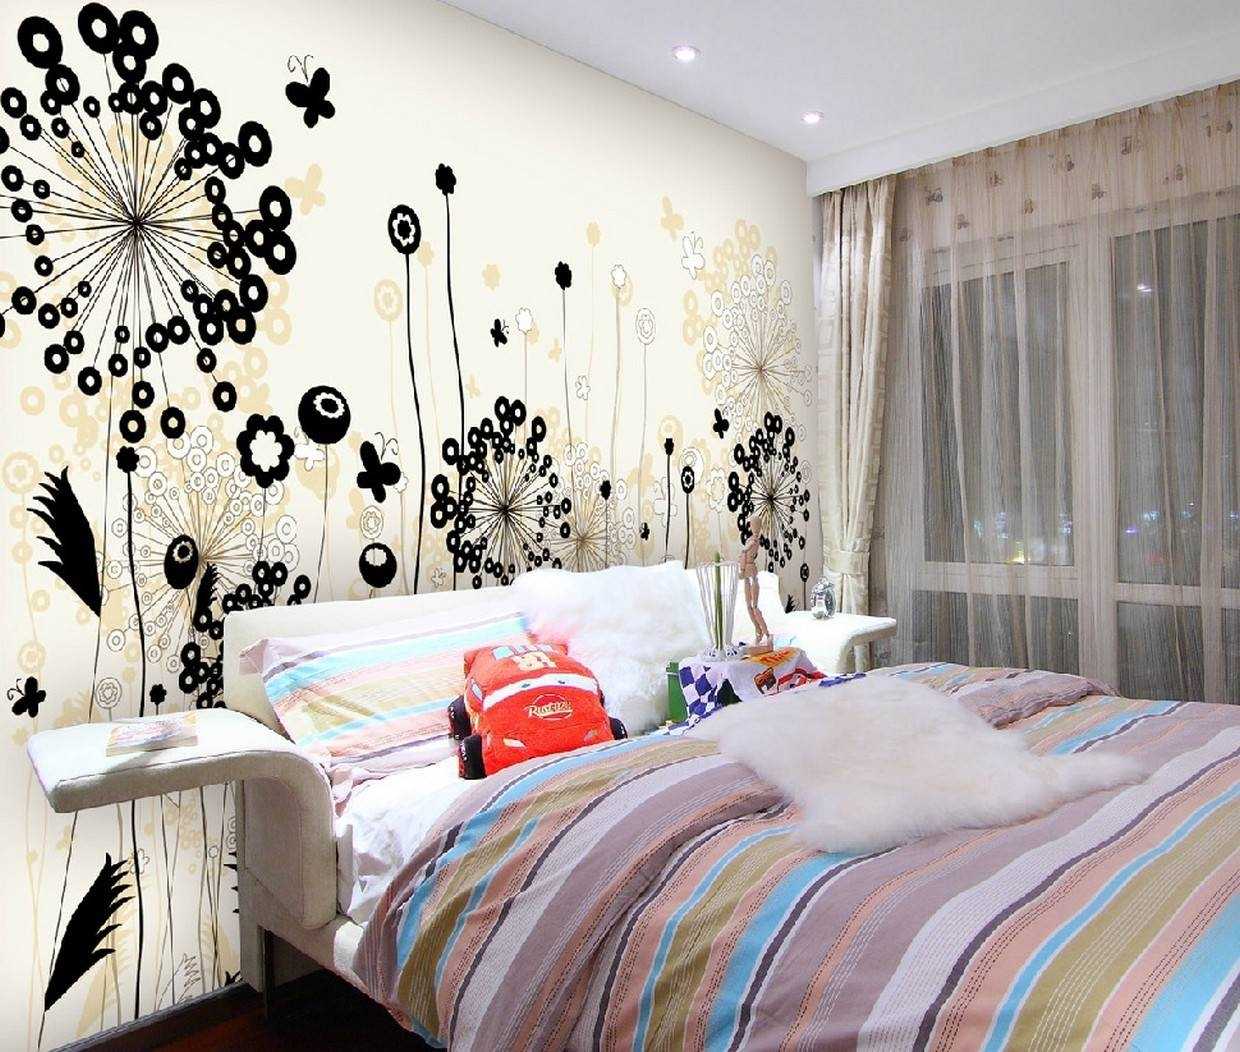 Cool Bedroom Paint Ideas Bendut Home Interior Exterior Wall Art Throughout Most Up To Date Teenage Wall Art (View 12 of 30)